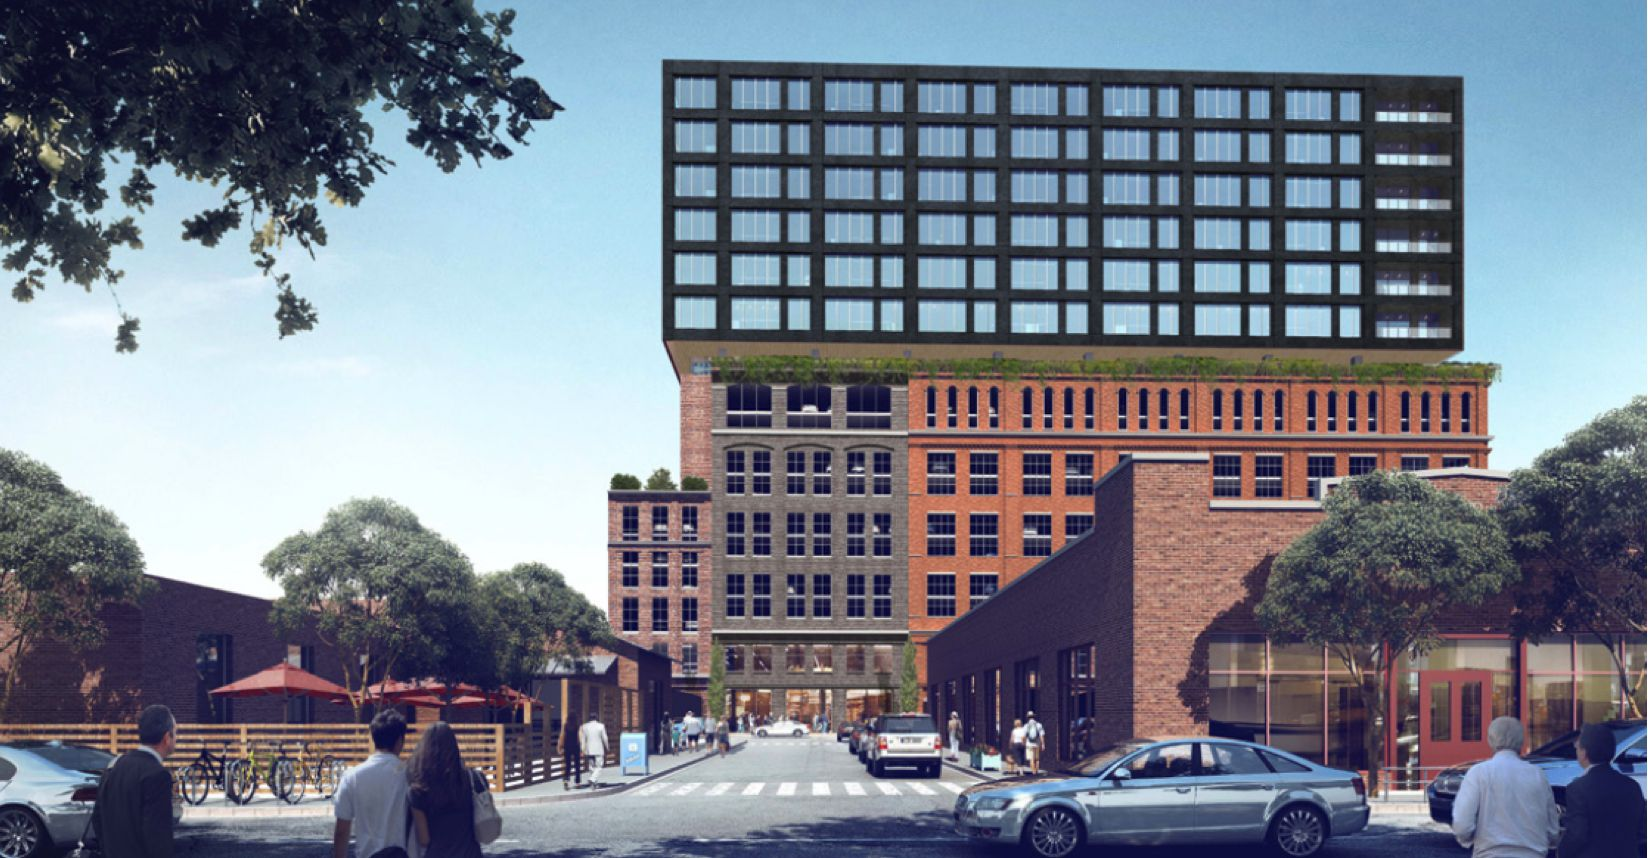 Houston-based developer Hines plans to start construction later this year on an office tower and retail building in Deep Ellum.